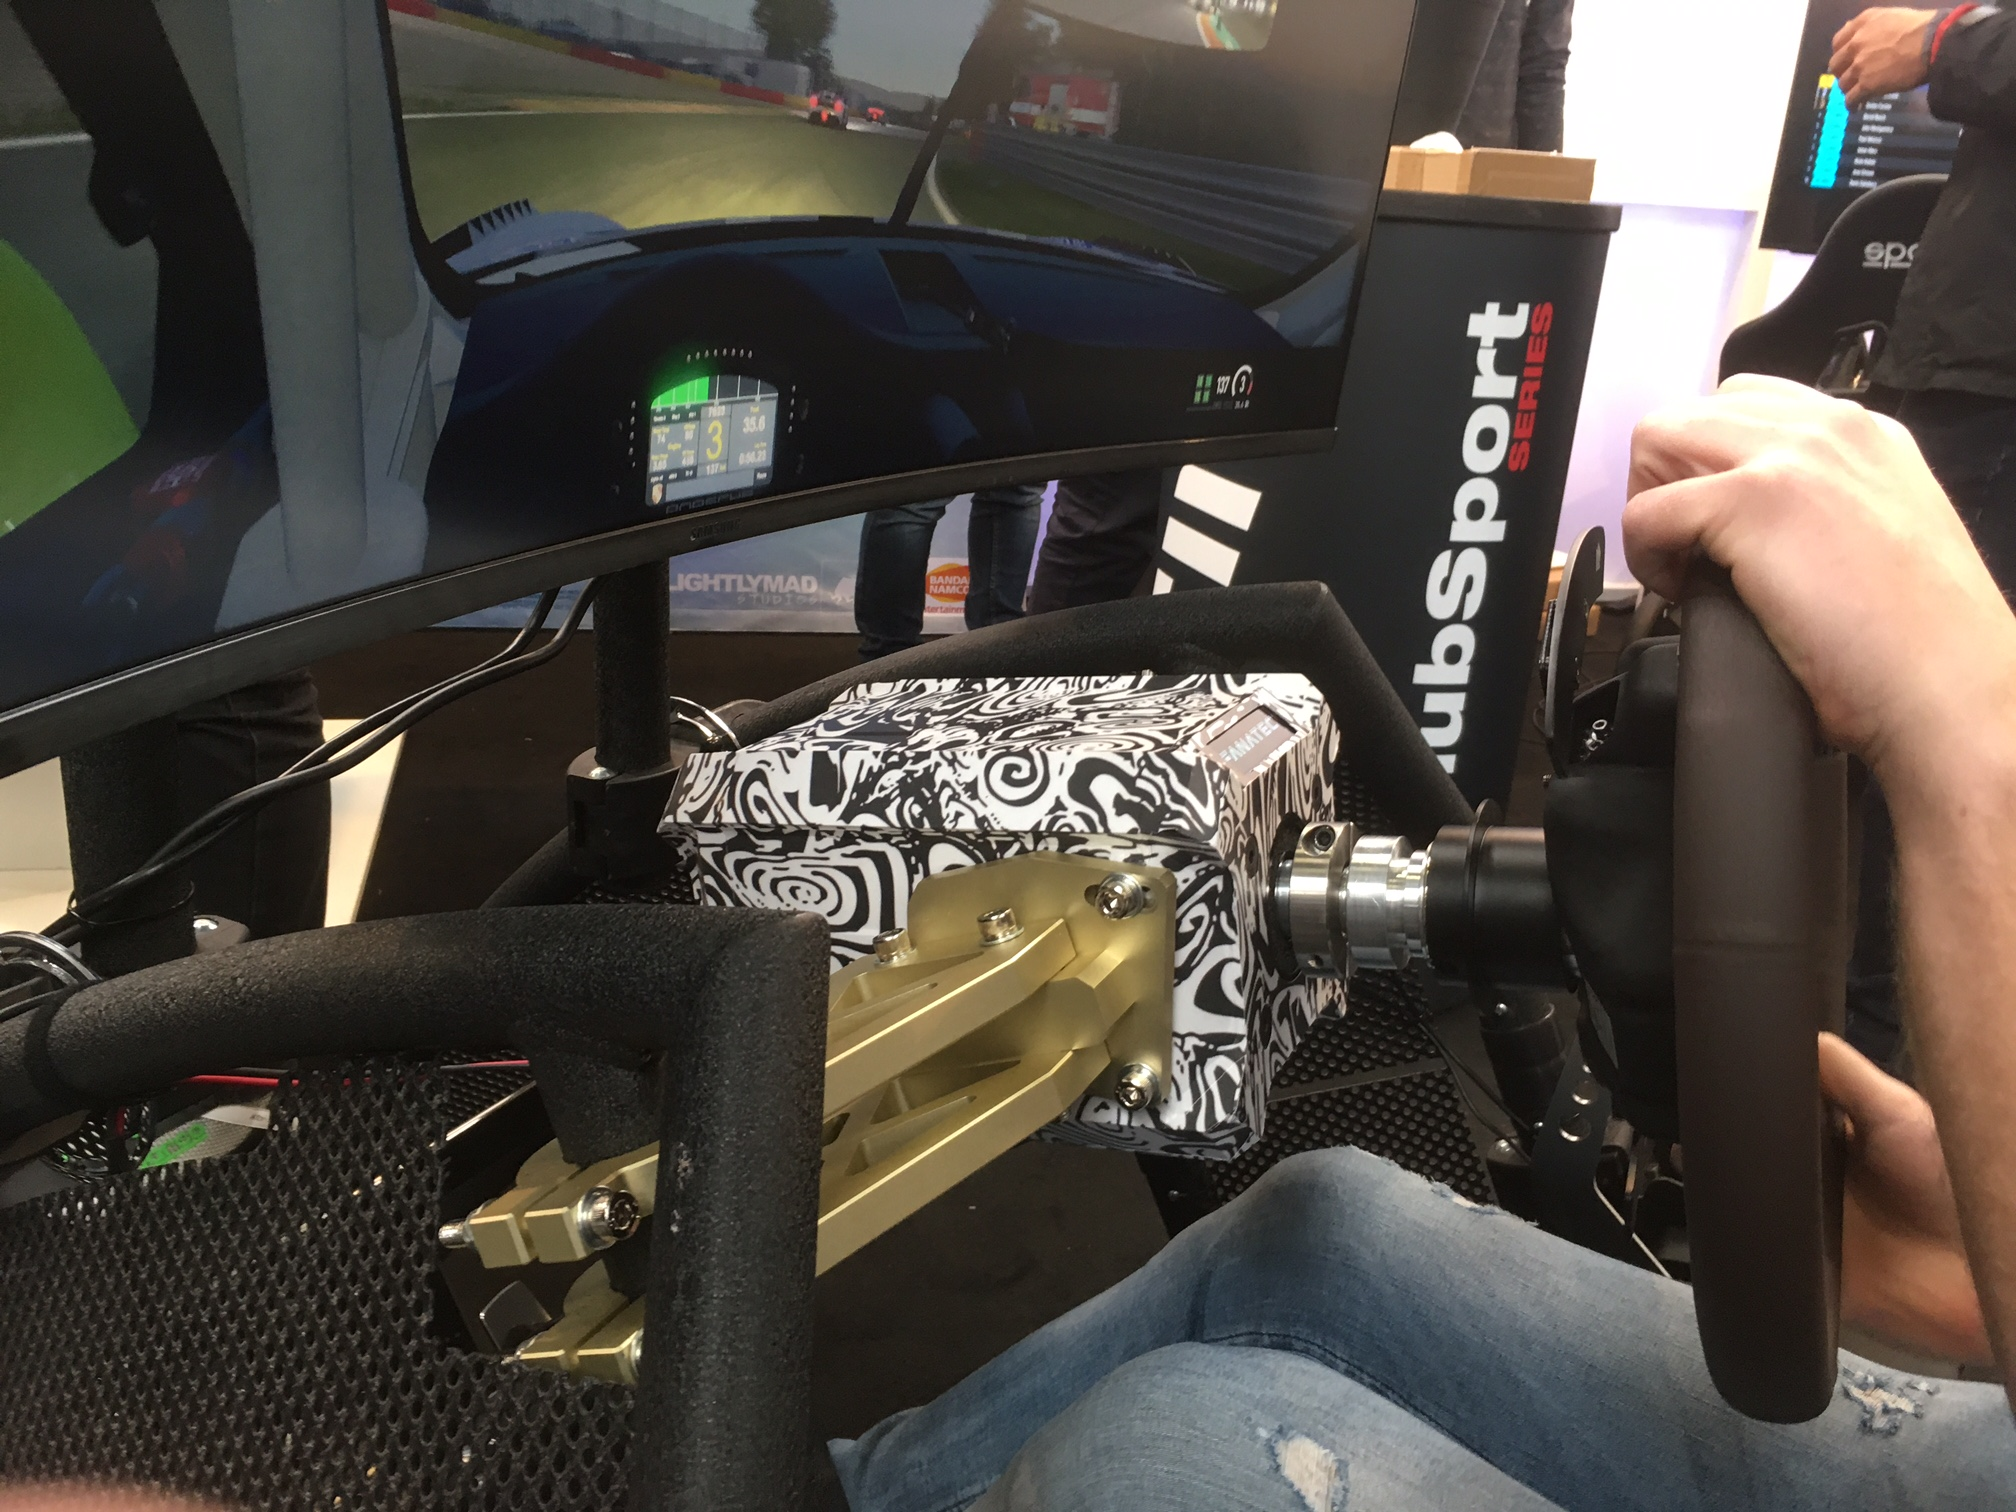 We Check Out the Fanatec Direct Drive Wheel | RaceDepartment